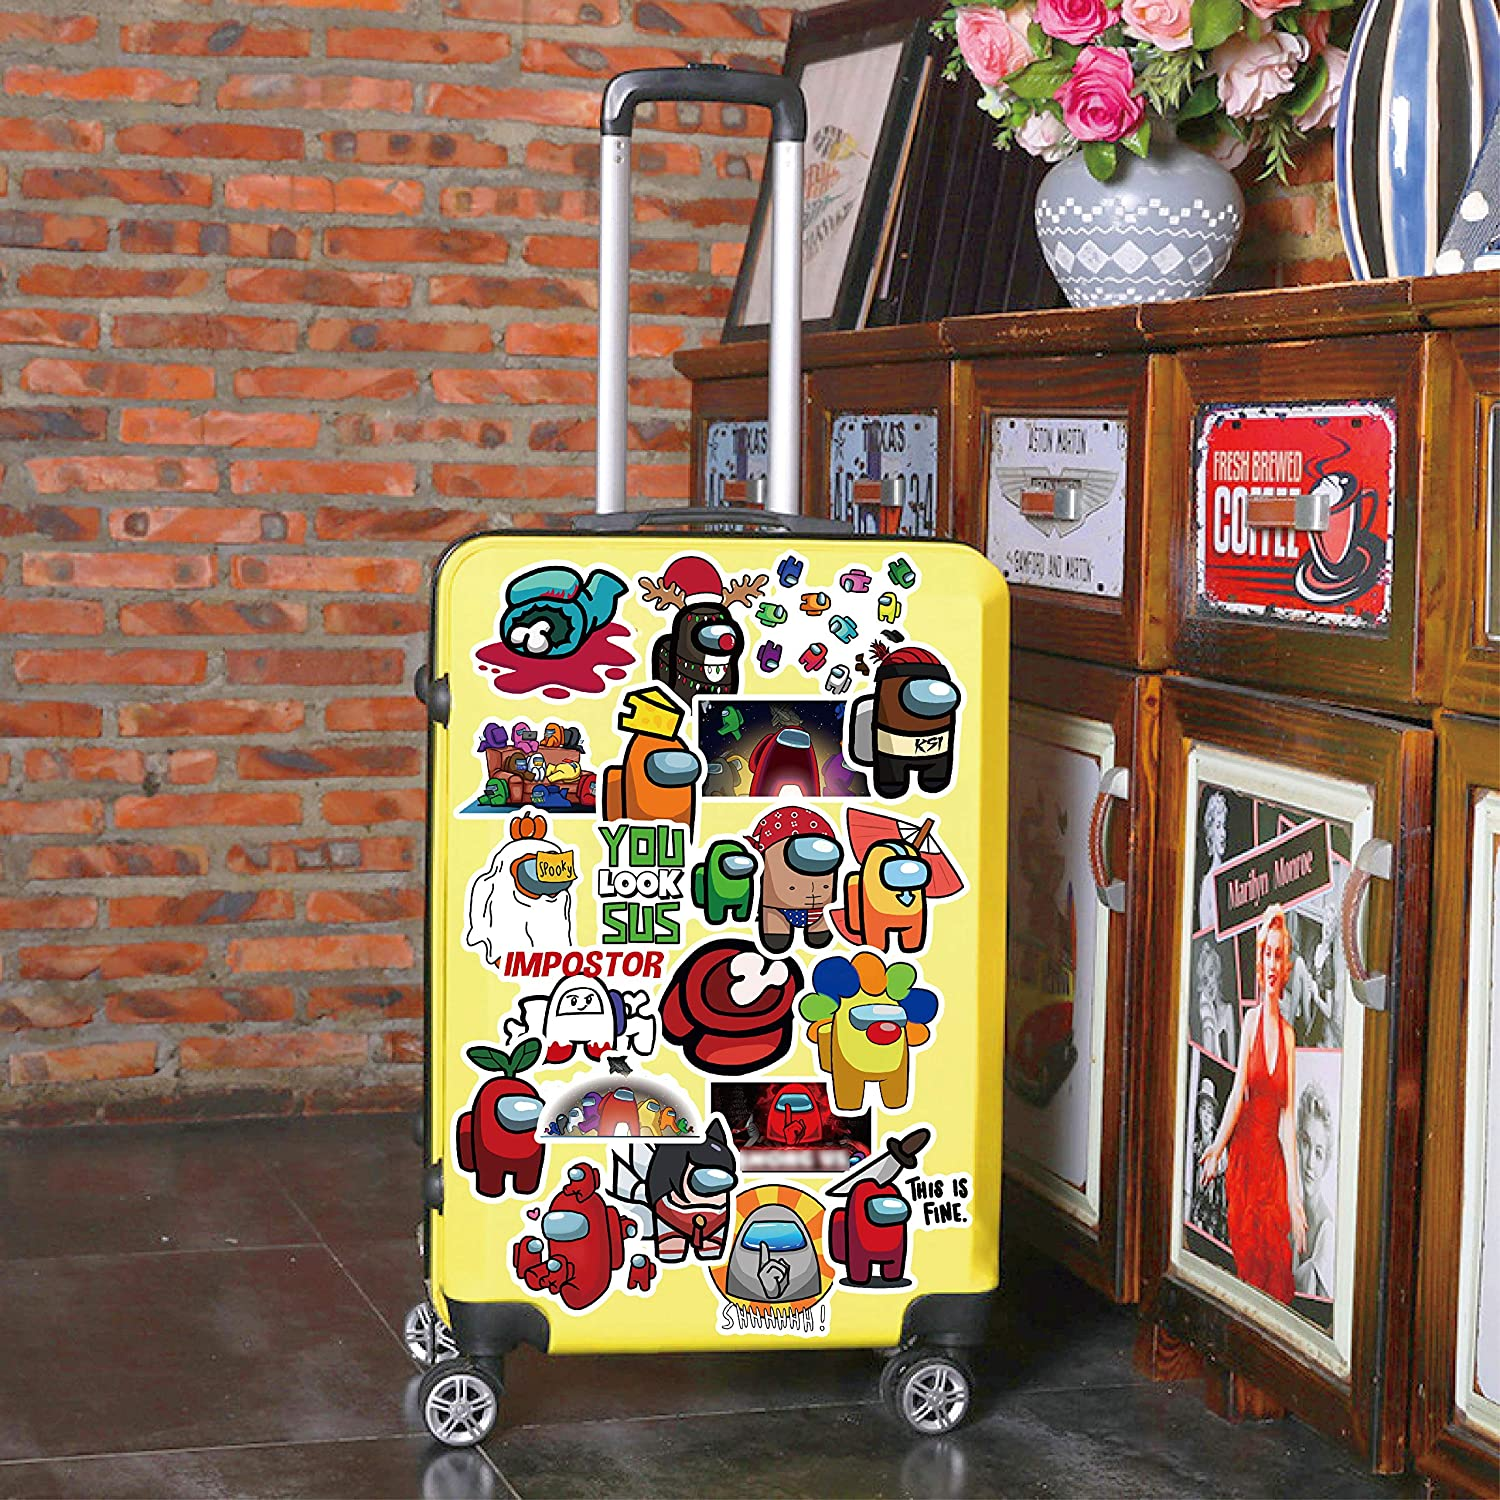 Phone//Guitar Stickers Gifts Waterproof Vinyl Stickers Bicycle Motorcycle Fridge Cartoon Travel Luggage Decal 200 PCS Game Us Stickers Among Popular Game Sticker Decals for Laptop